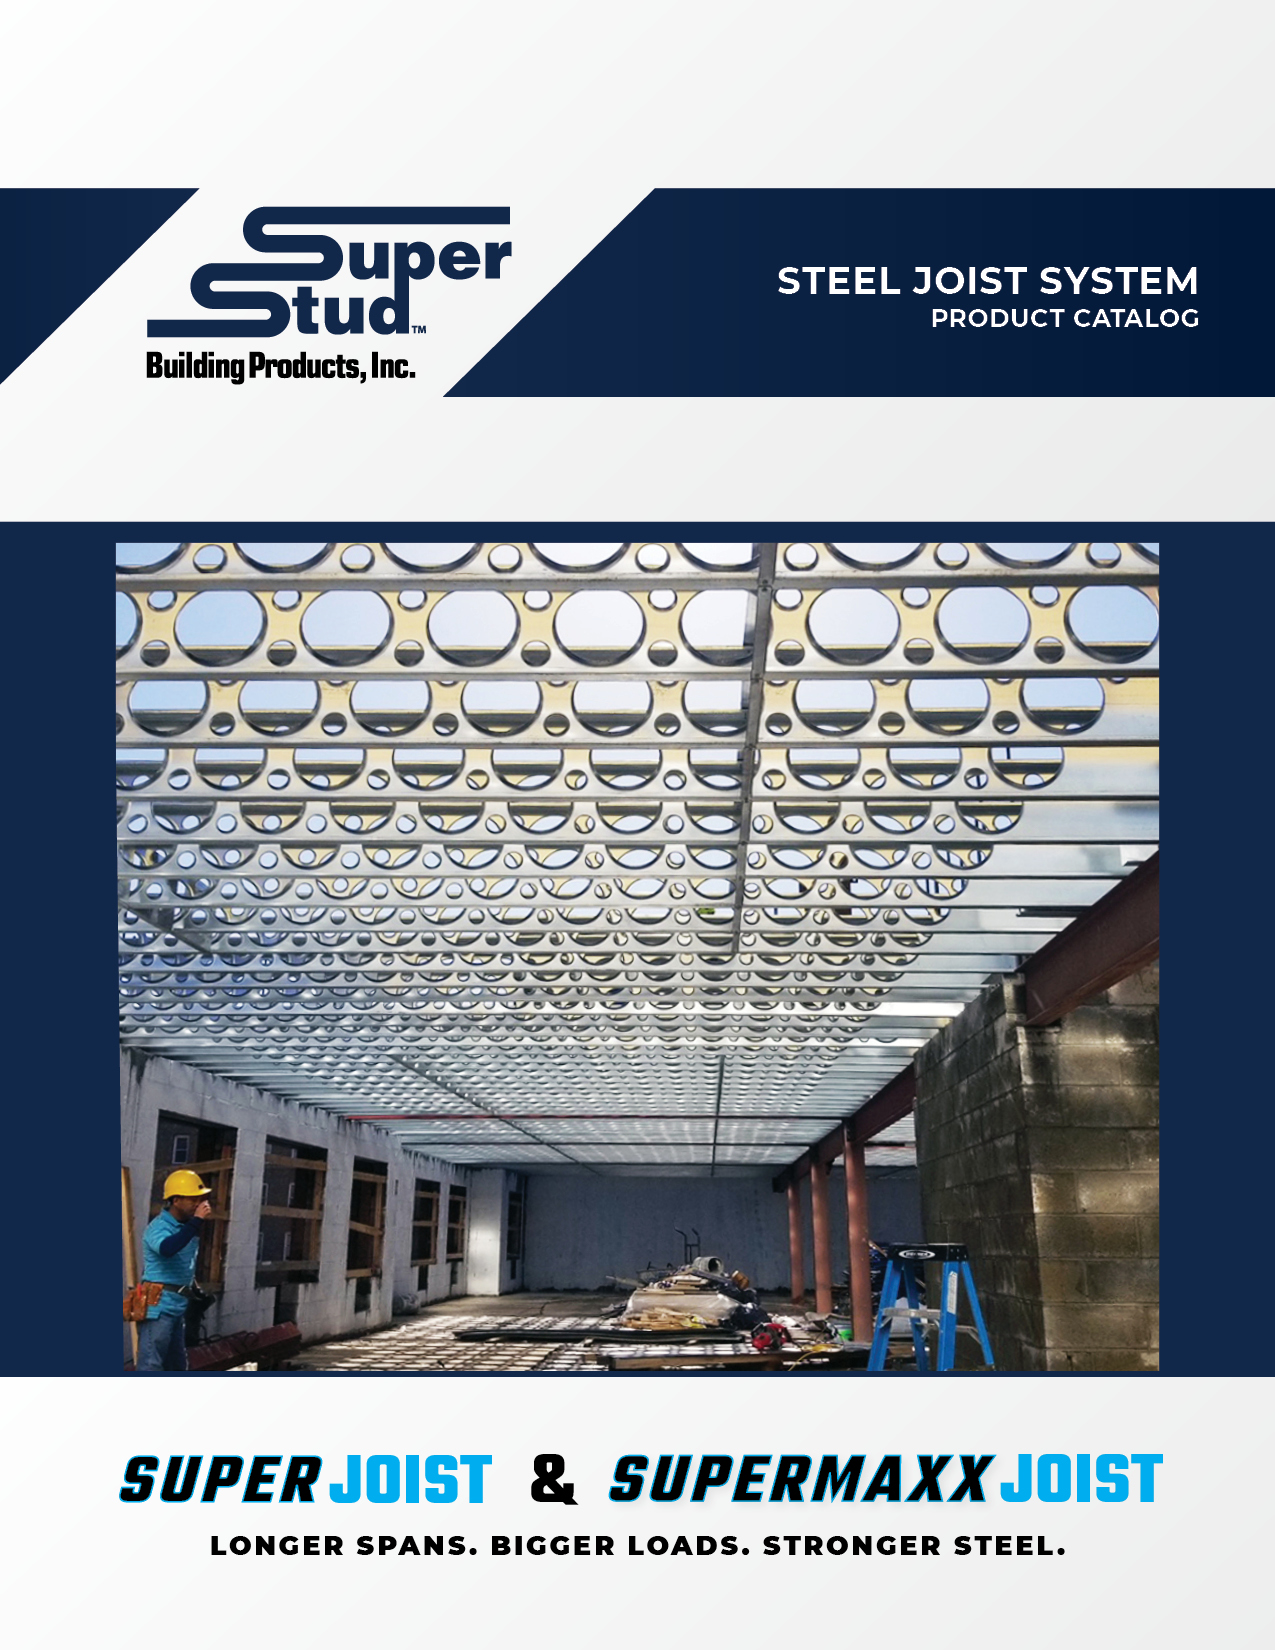 SuperMAXX and SuperJoist Spans Catalog